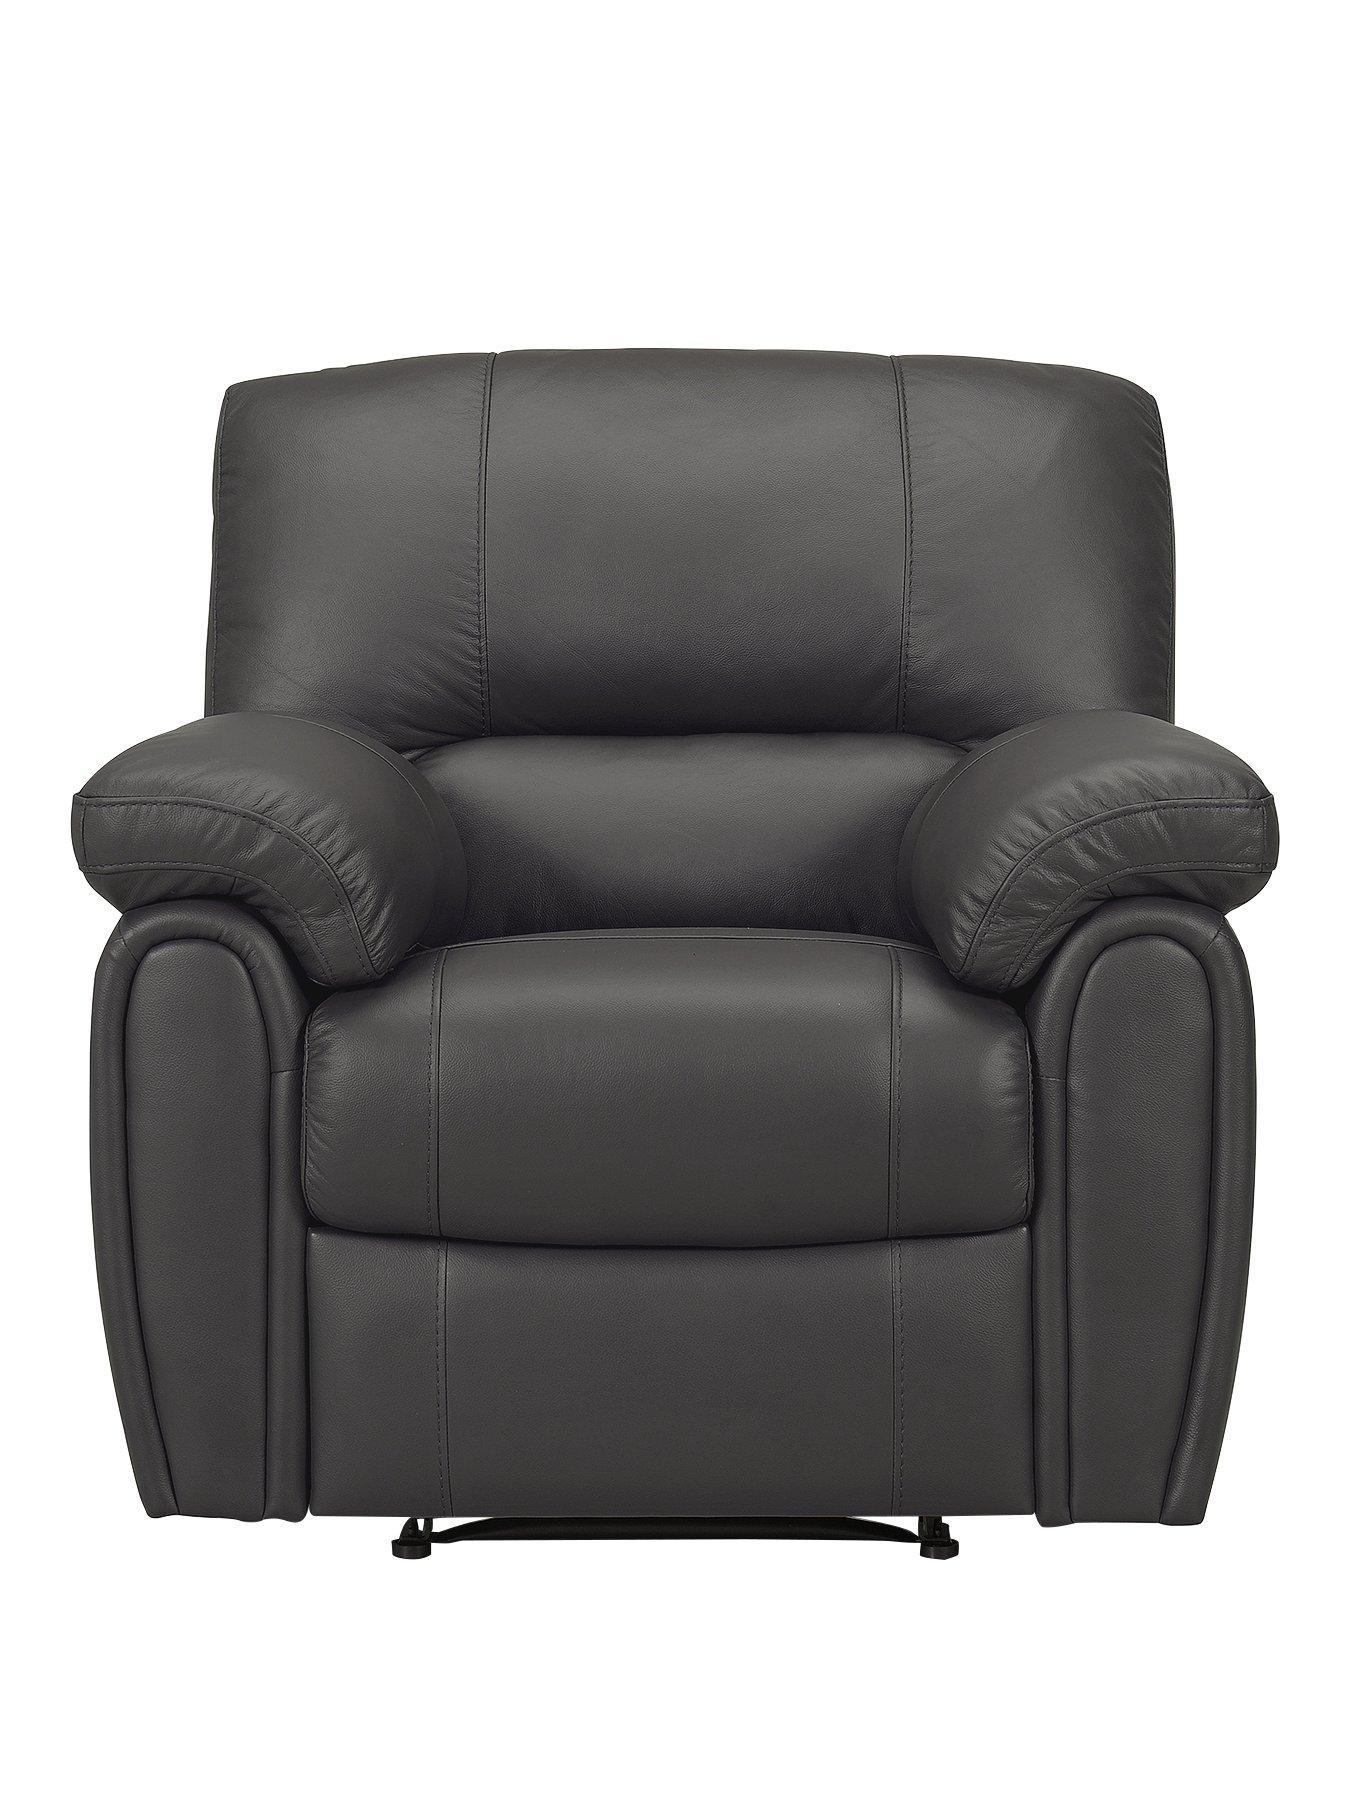 power recliner chairs uk office depot ergonomic violino leighton leather faux armchair very